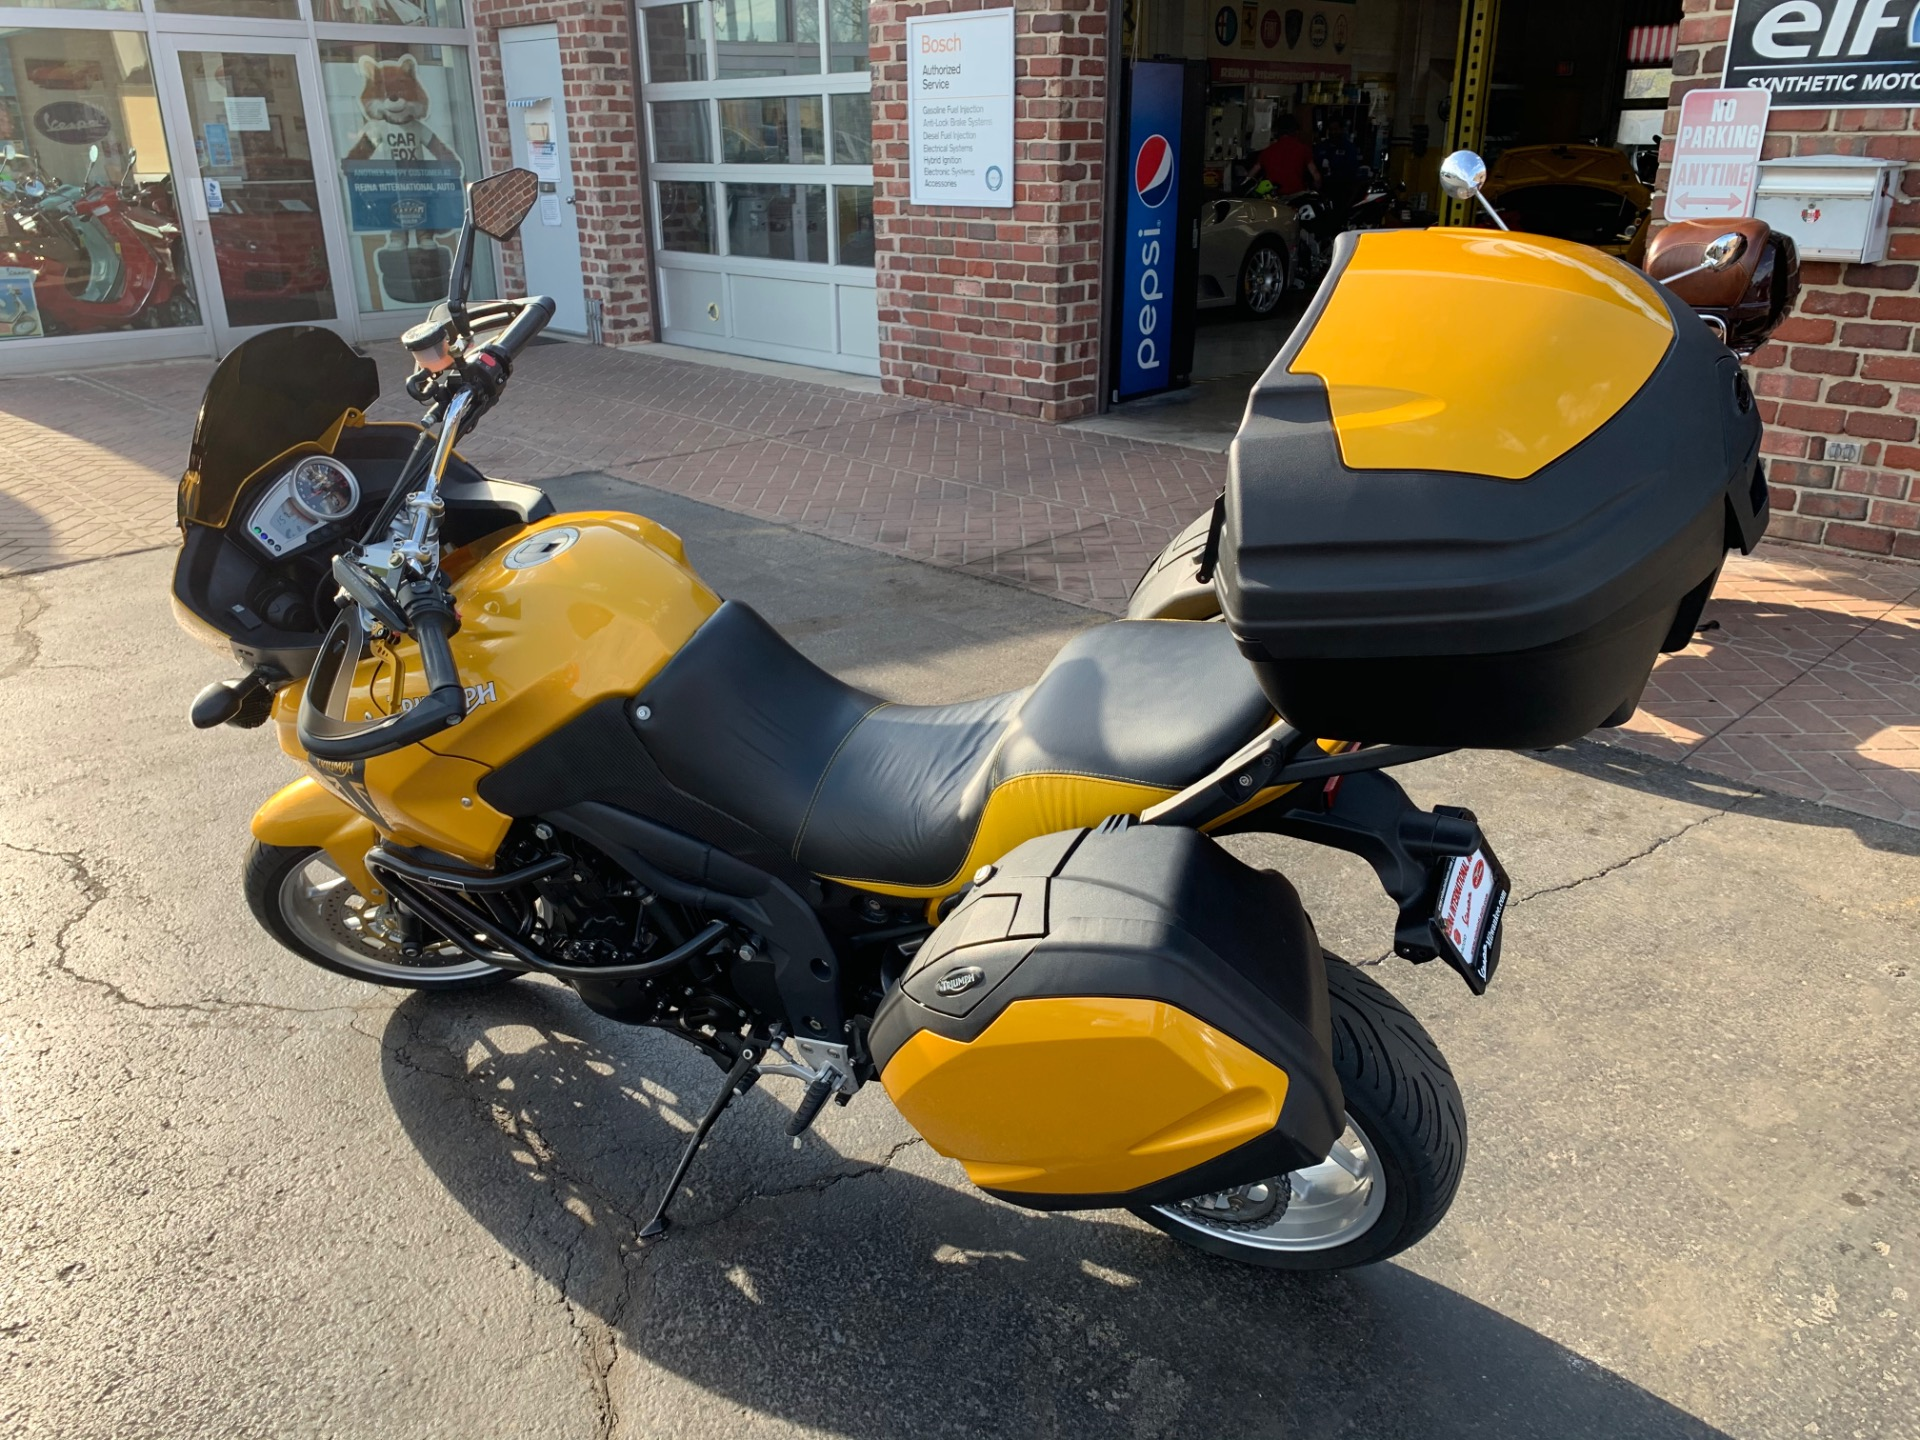 Used-2007-TRIUMPH-TIGER-1050-ABS